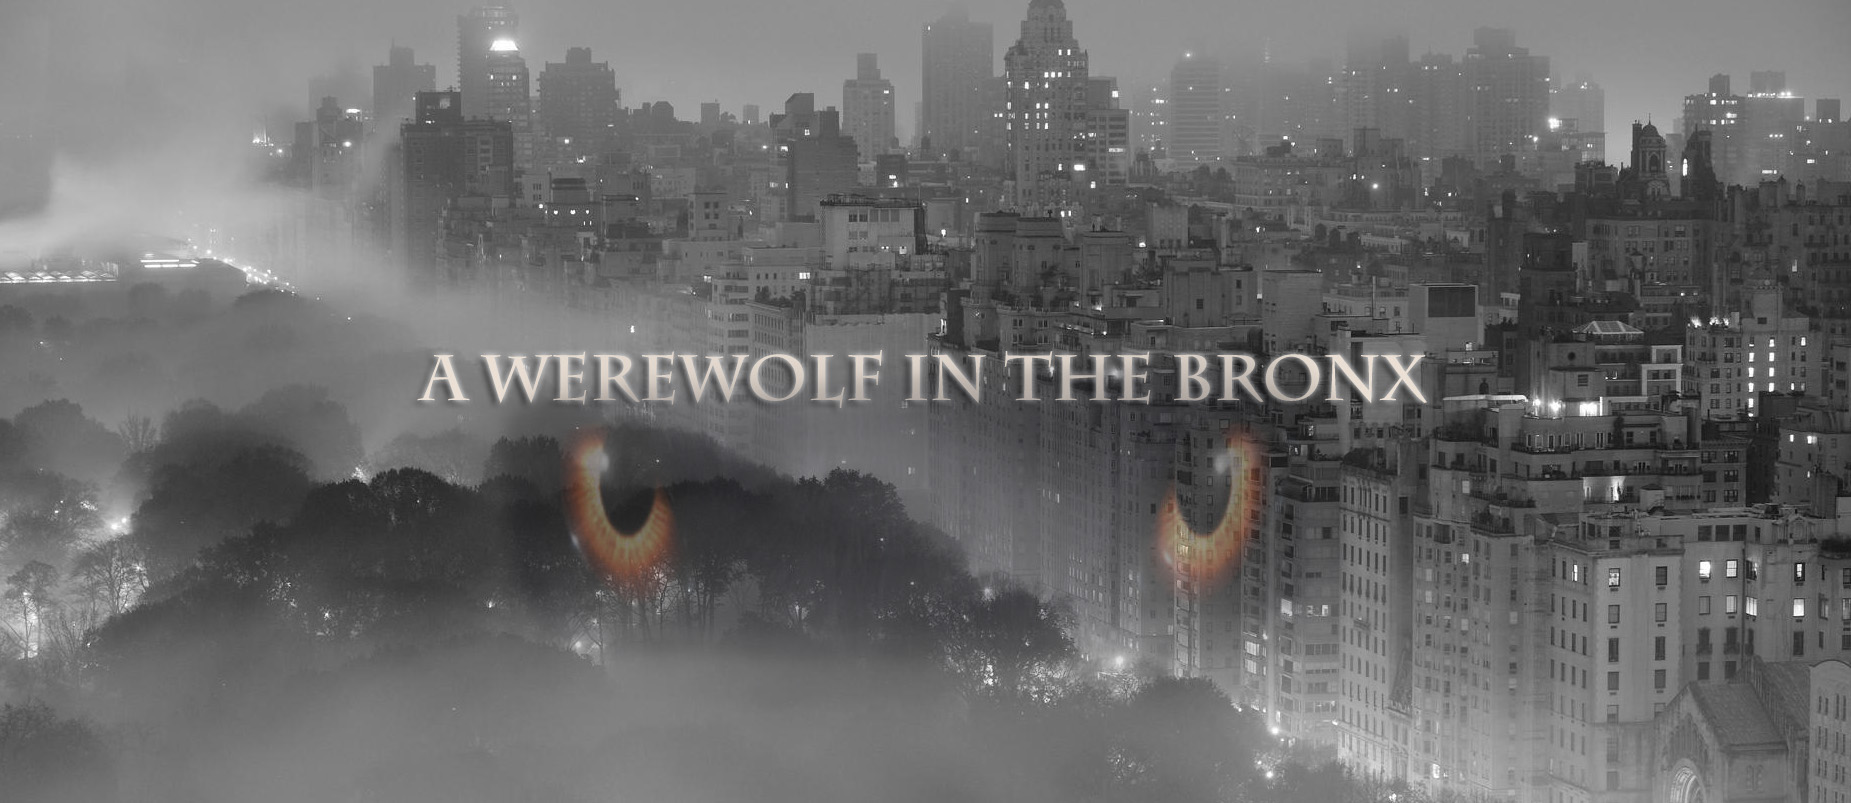 A Werewolf In The Bronx